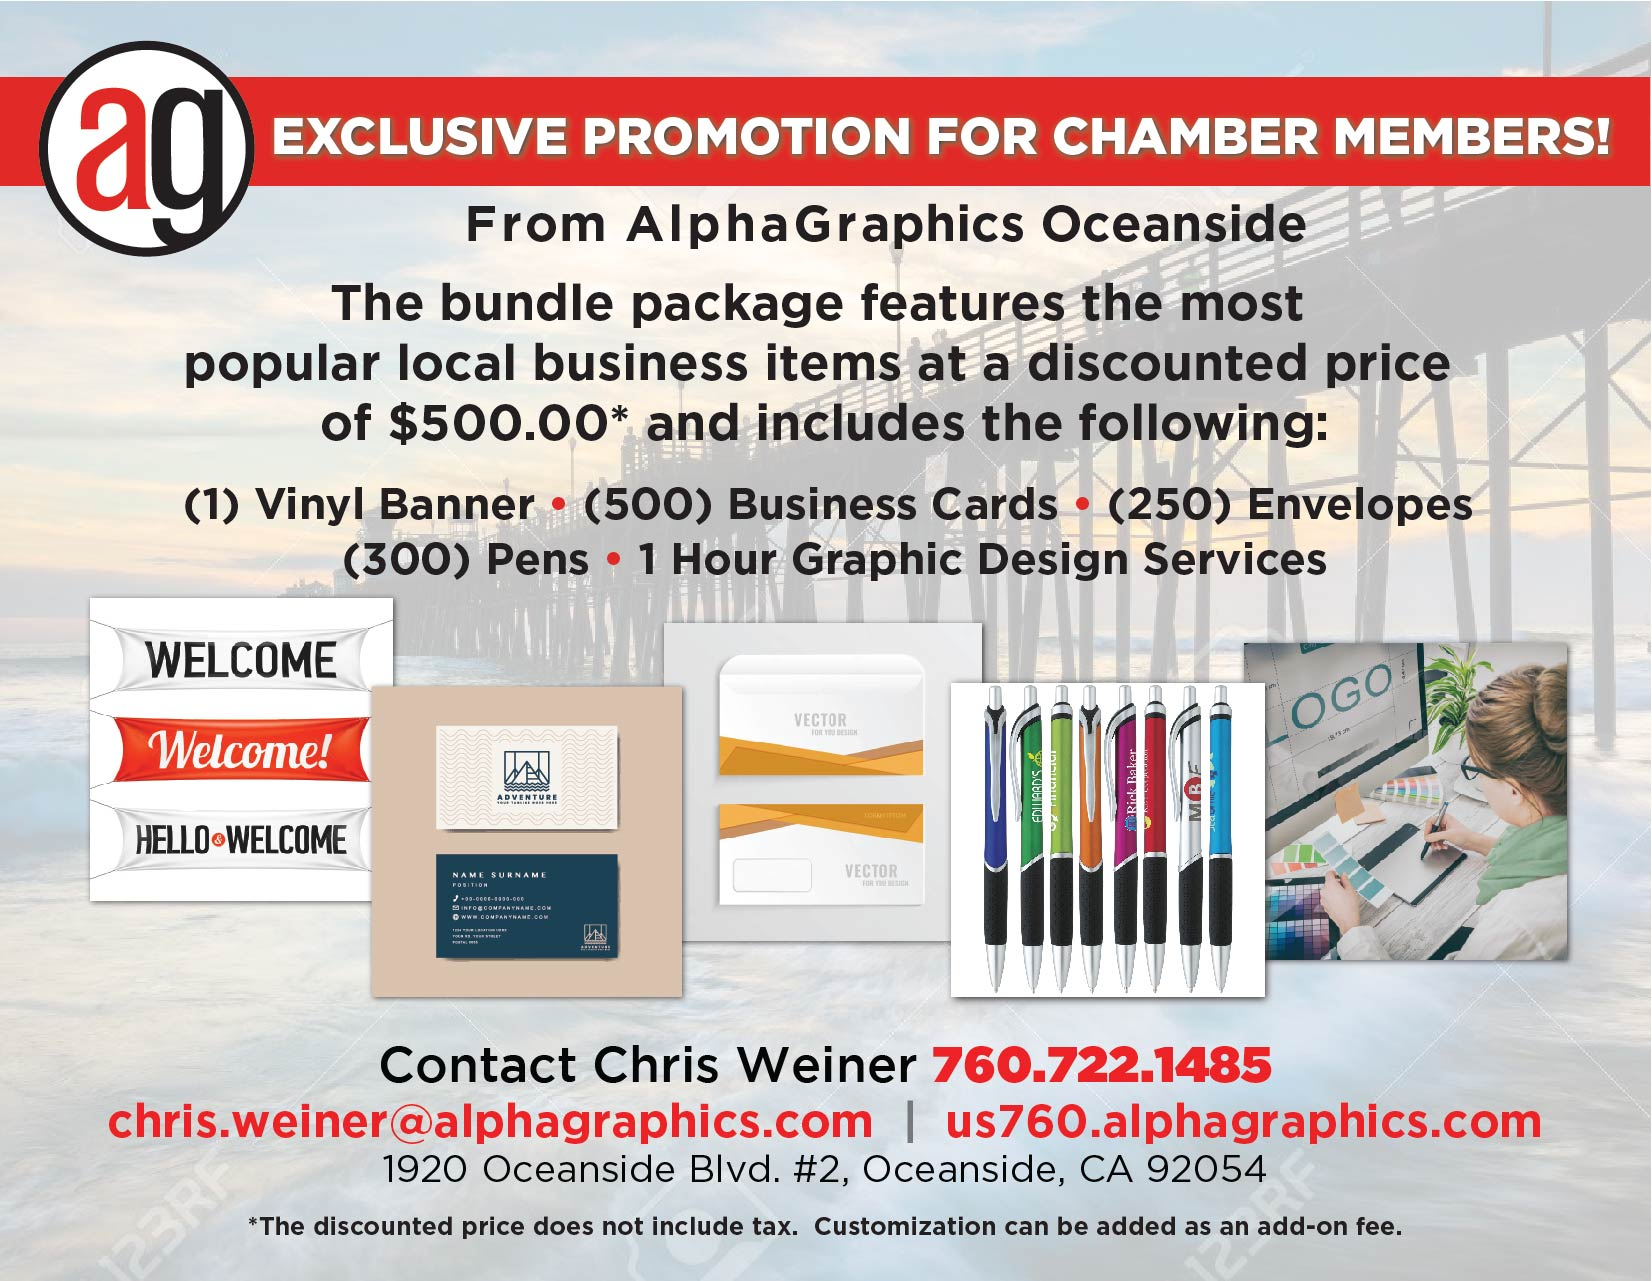 Exclusive 2020 Deal On Printing And Marketing Services For North County Chamber Members